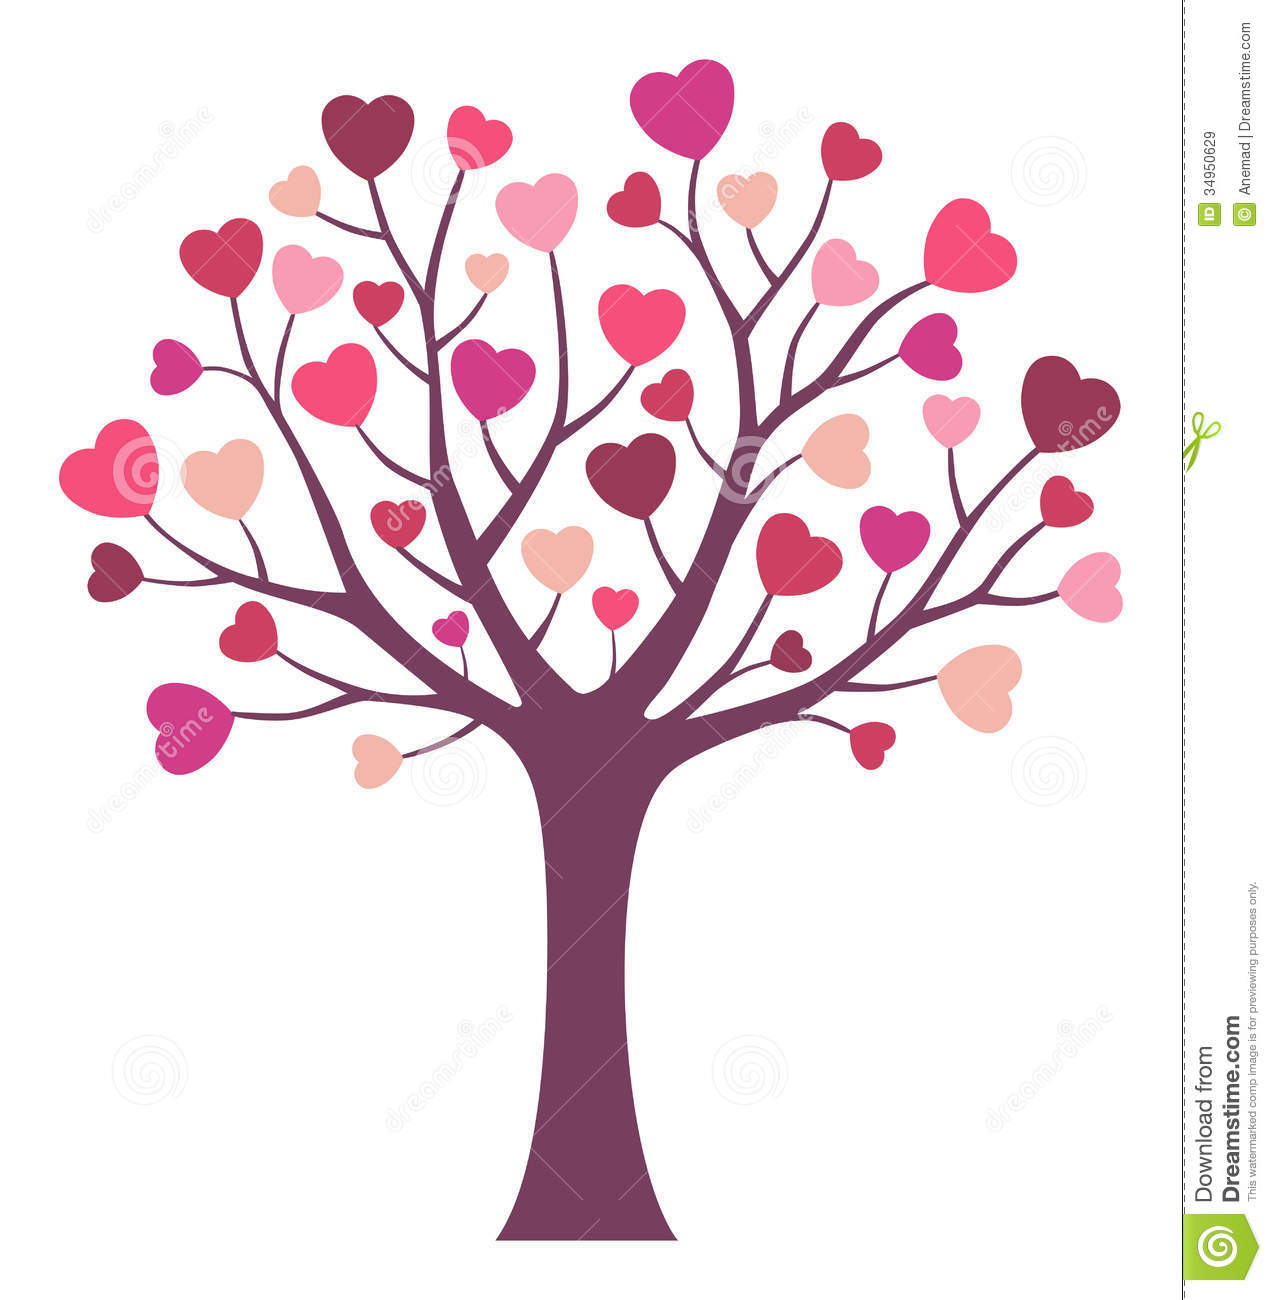 love tree royalty free stock images image 34950629 winter tree clip art whimsical winter tree clipart free